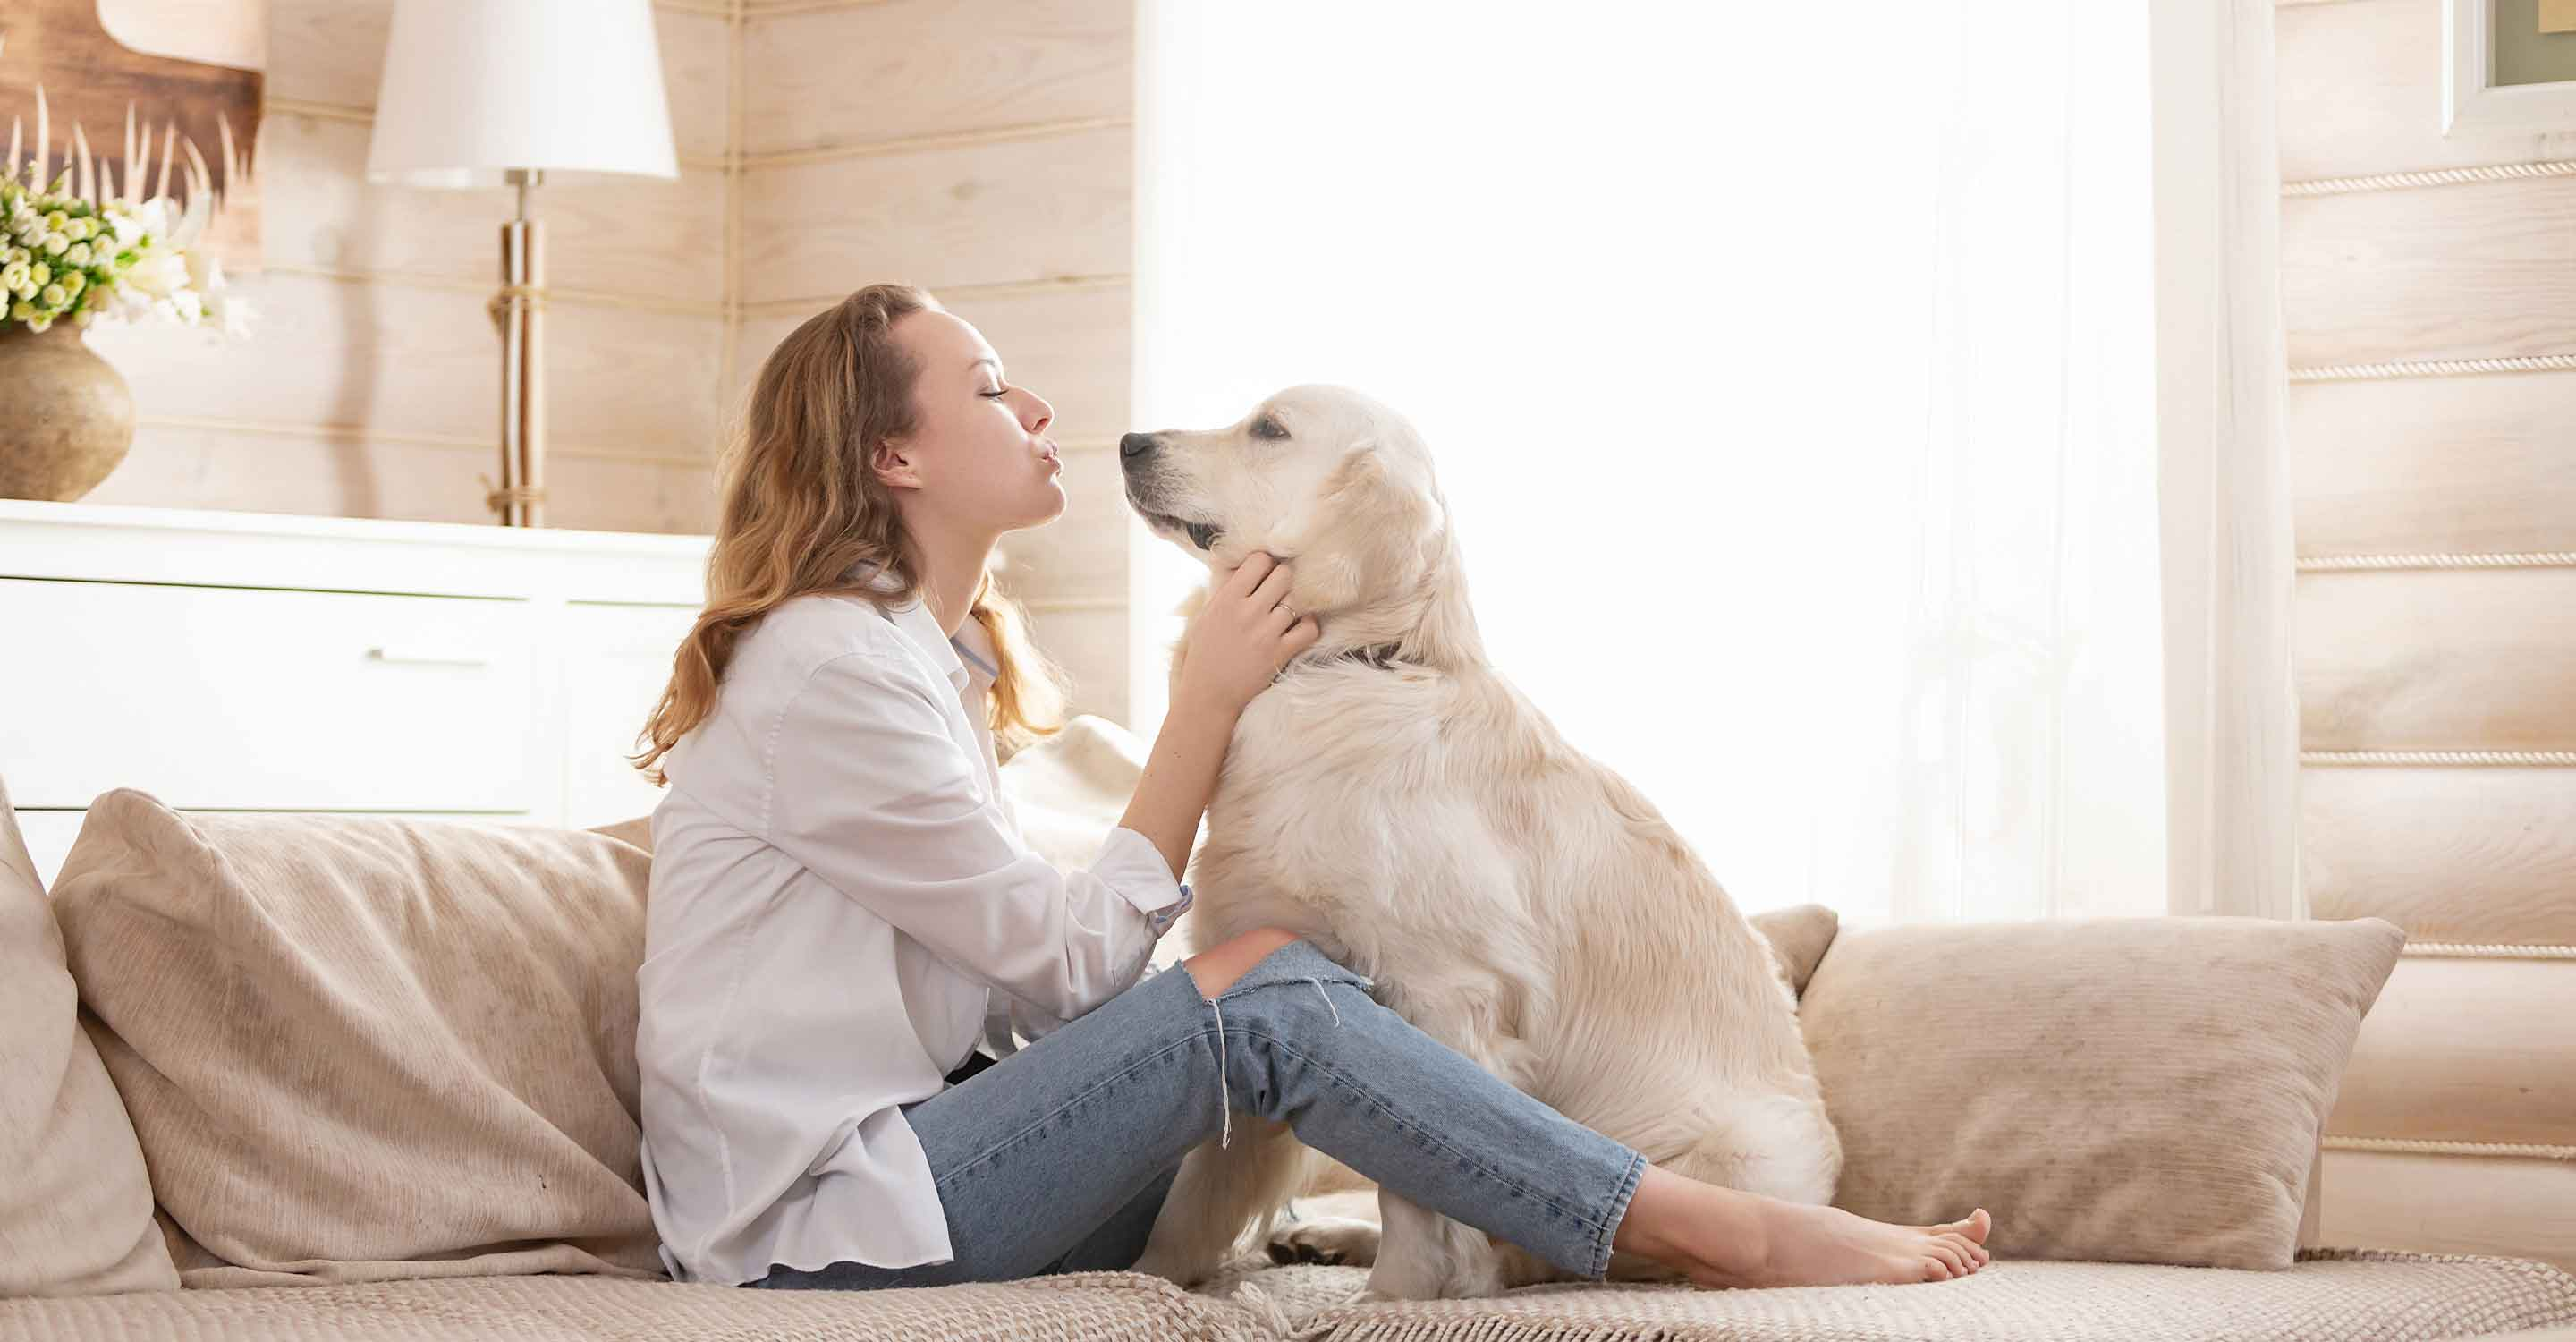 How to coexist with pets and allergies